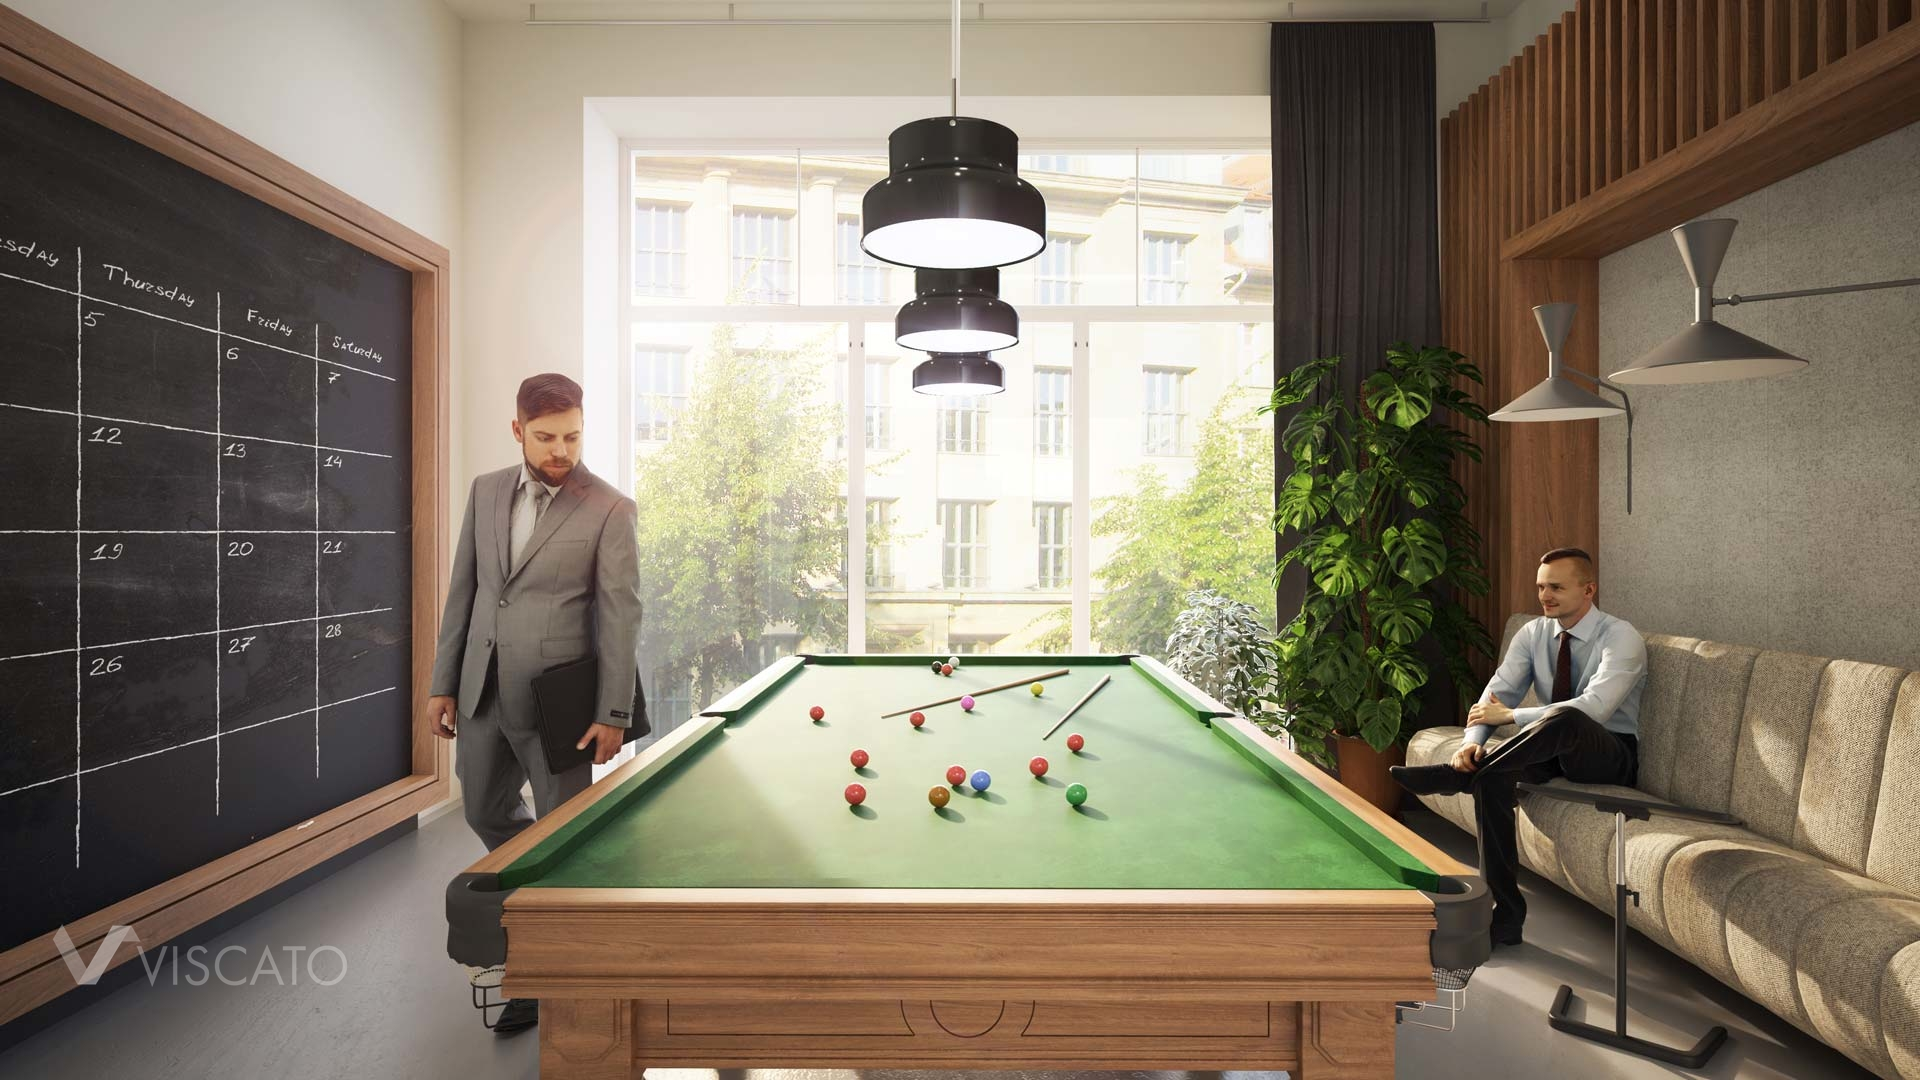 Entertainment area in an office, 3ds Max